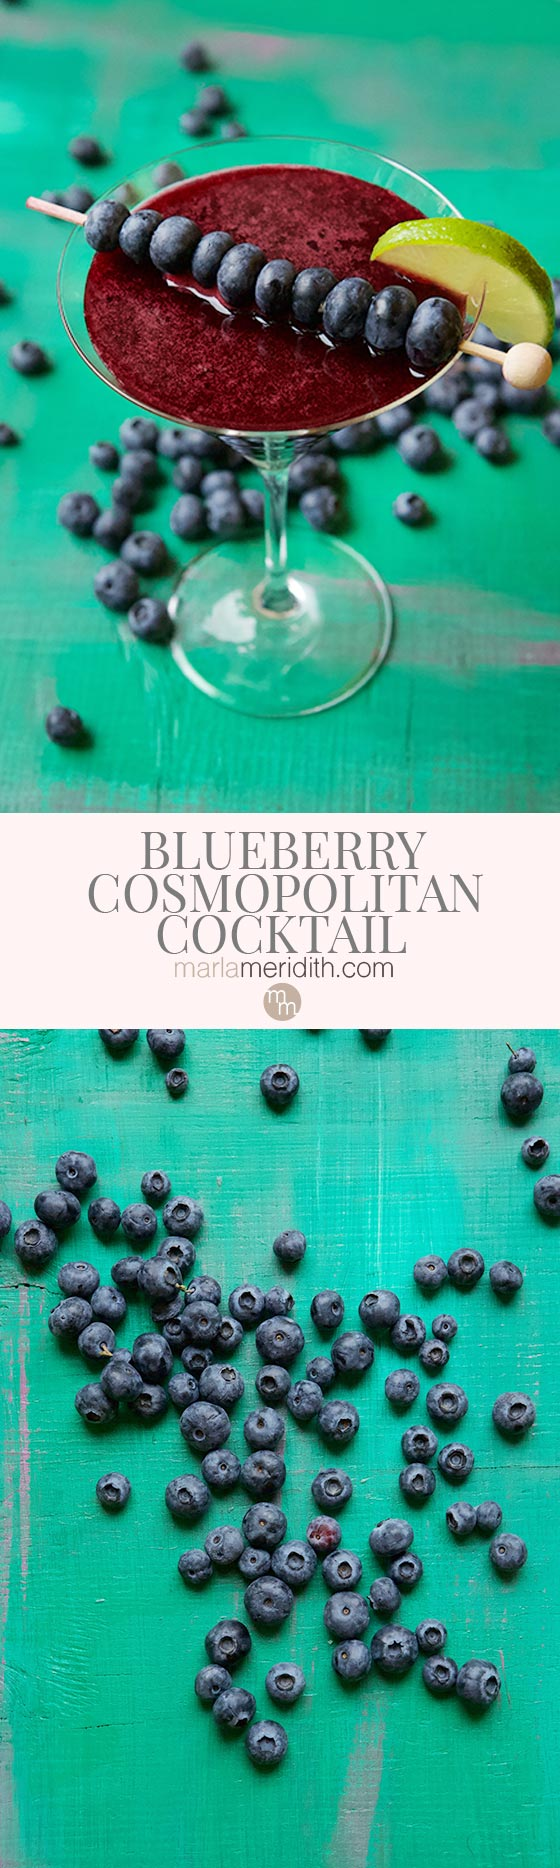 This Blueberry Cosmopolitan Cocktail recipe is a simply delicious creation with fresh blueberries, lime juice, vodka and St. Germain. MarlaMeridith.com